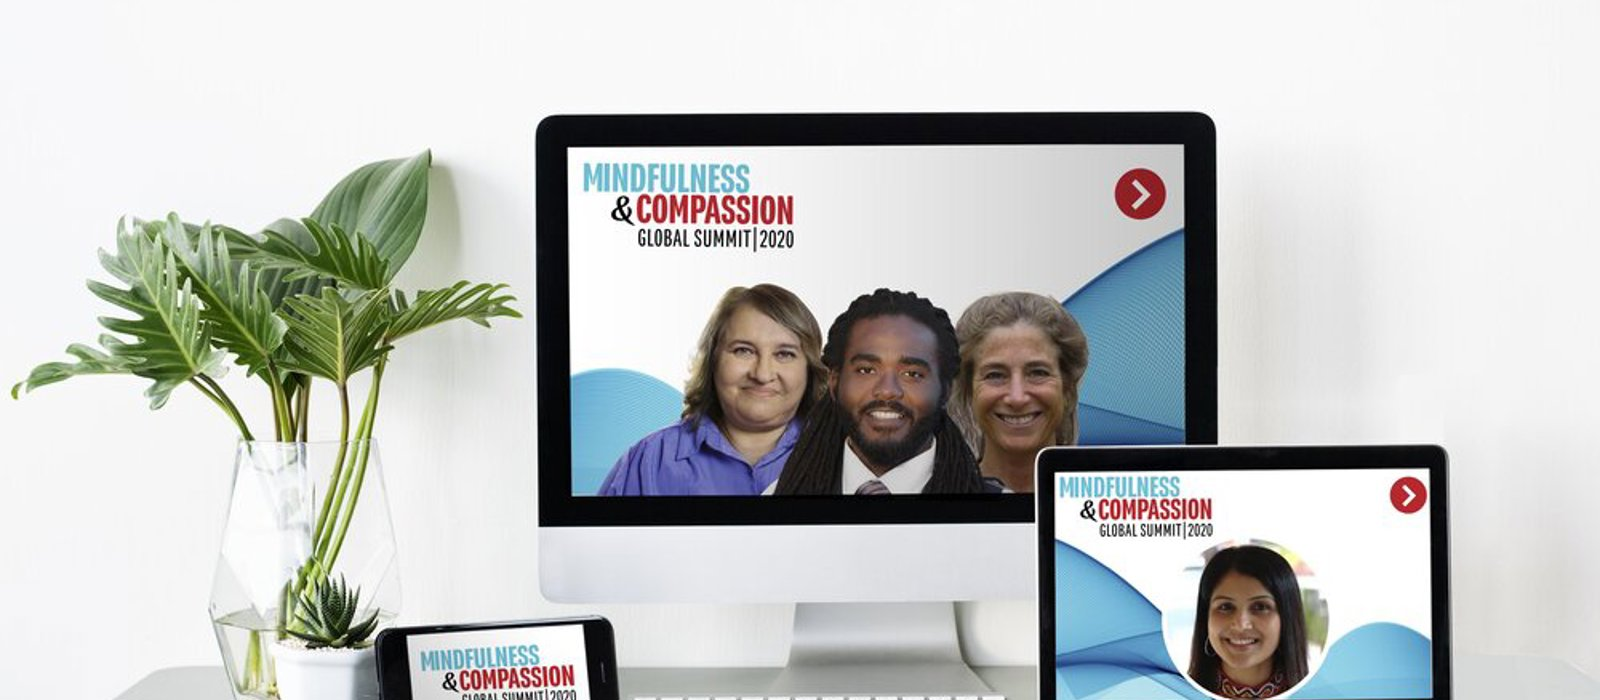 Picture of Mindfulness & Compassion Summit